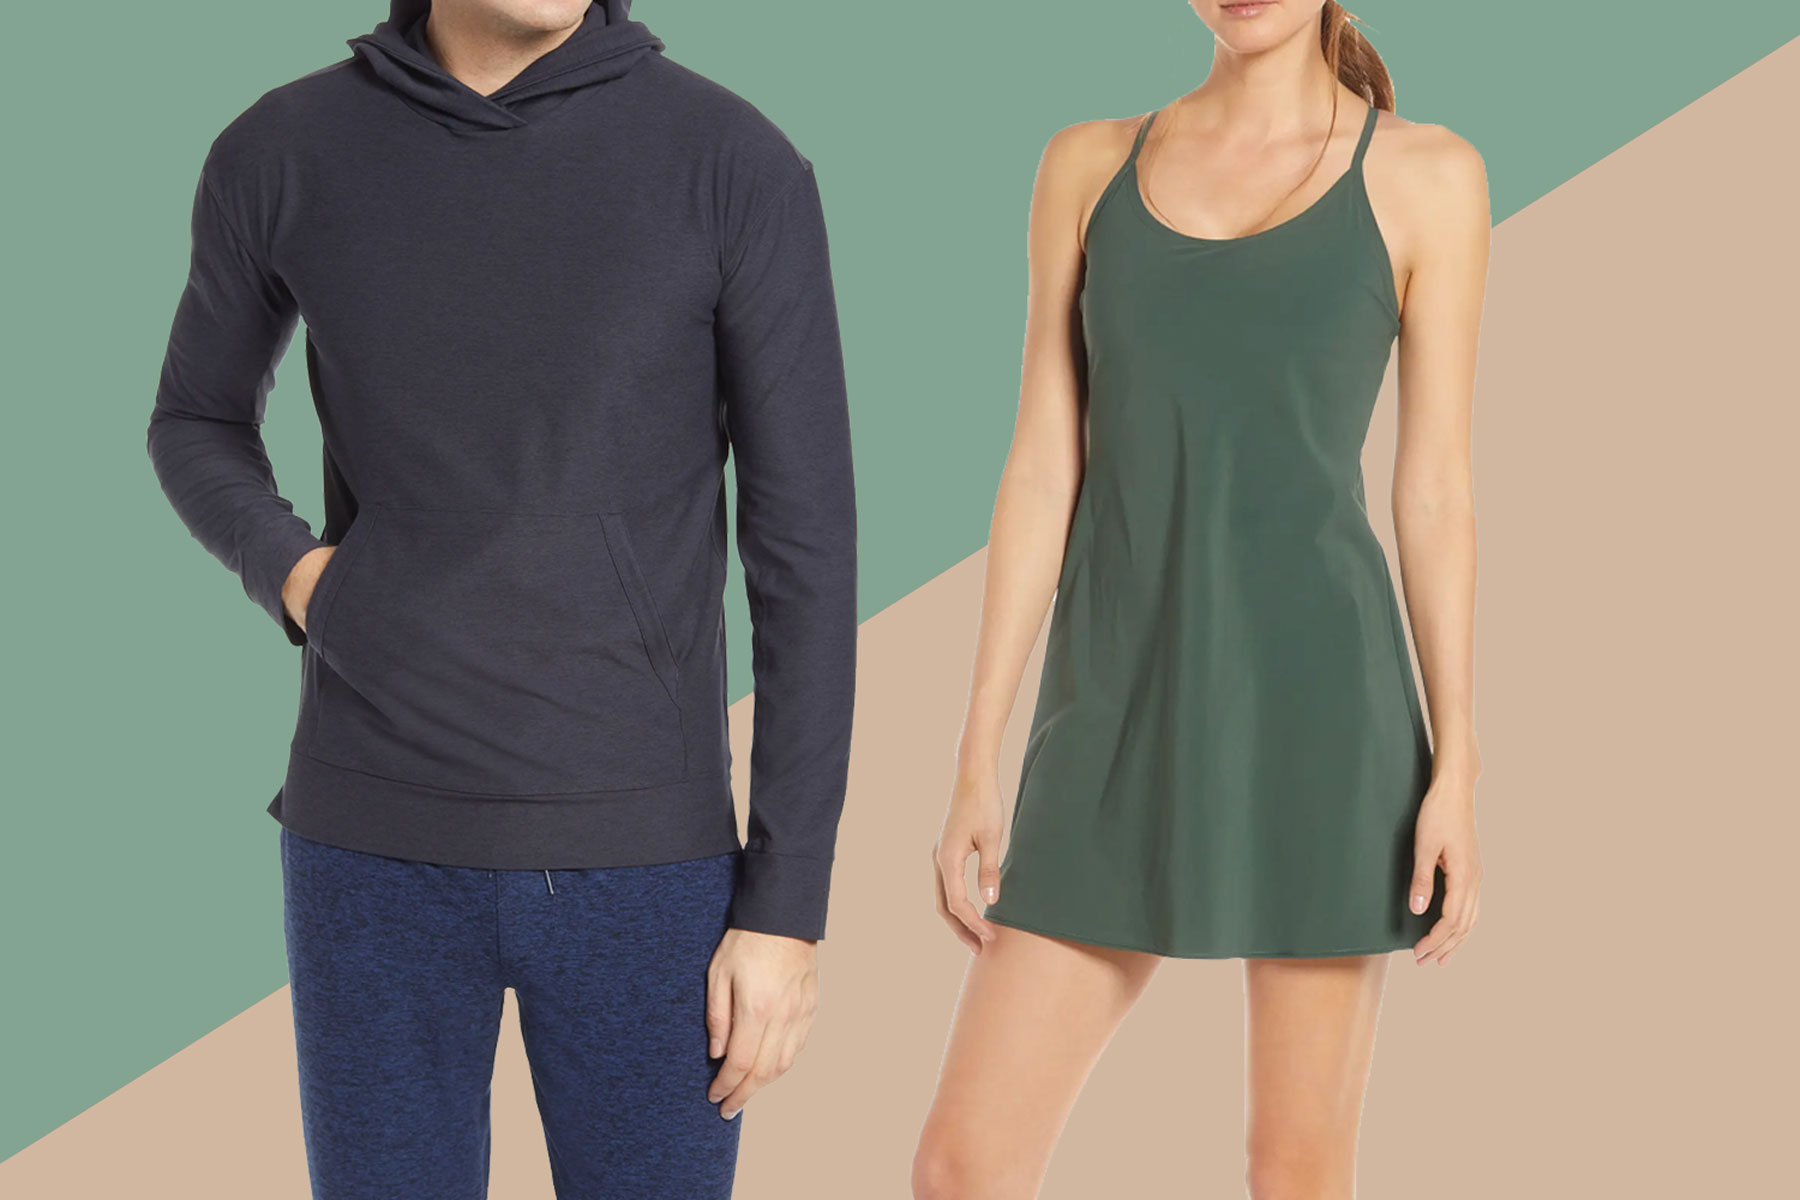 Man wearing black/grey hoodie and woman wearing olive green exercise dress